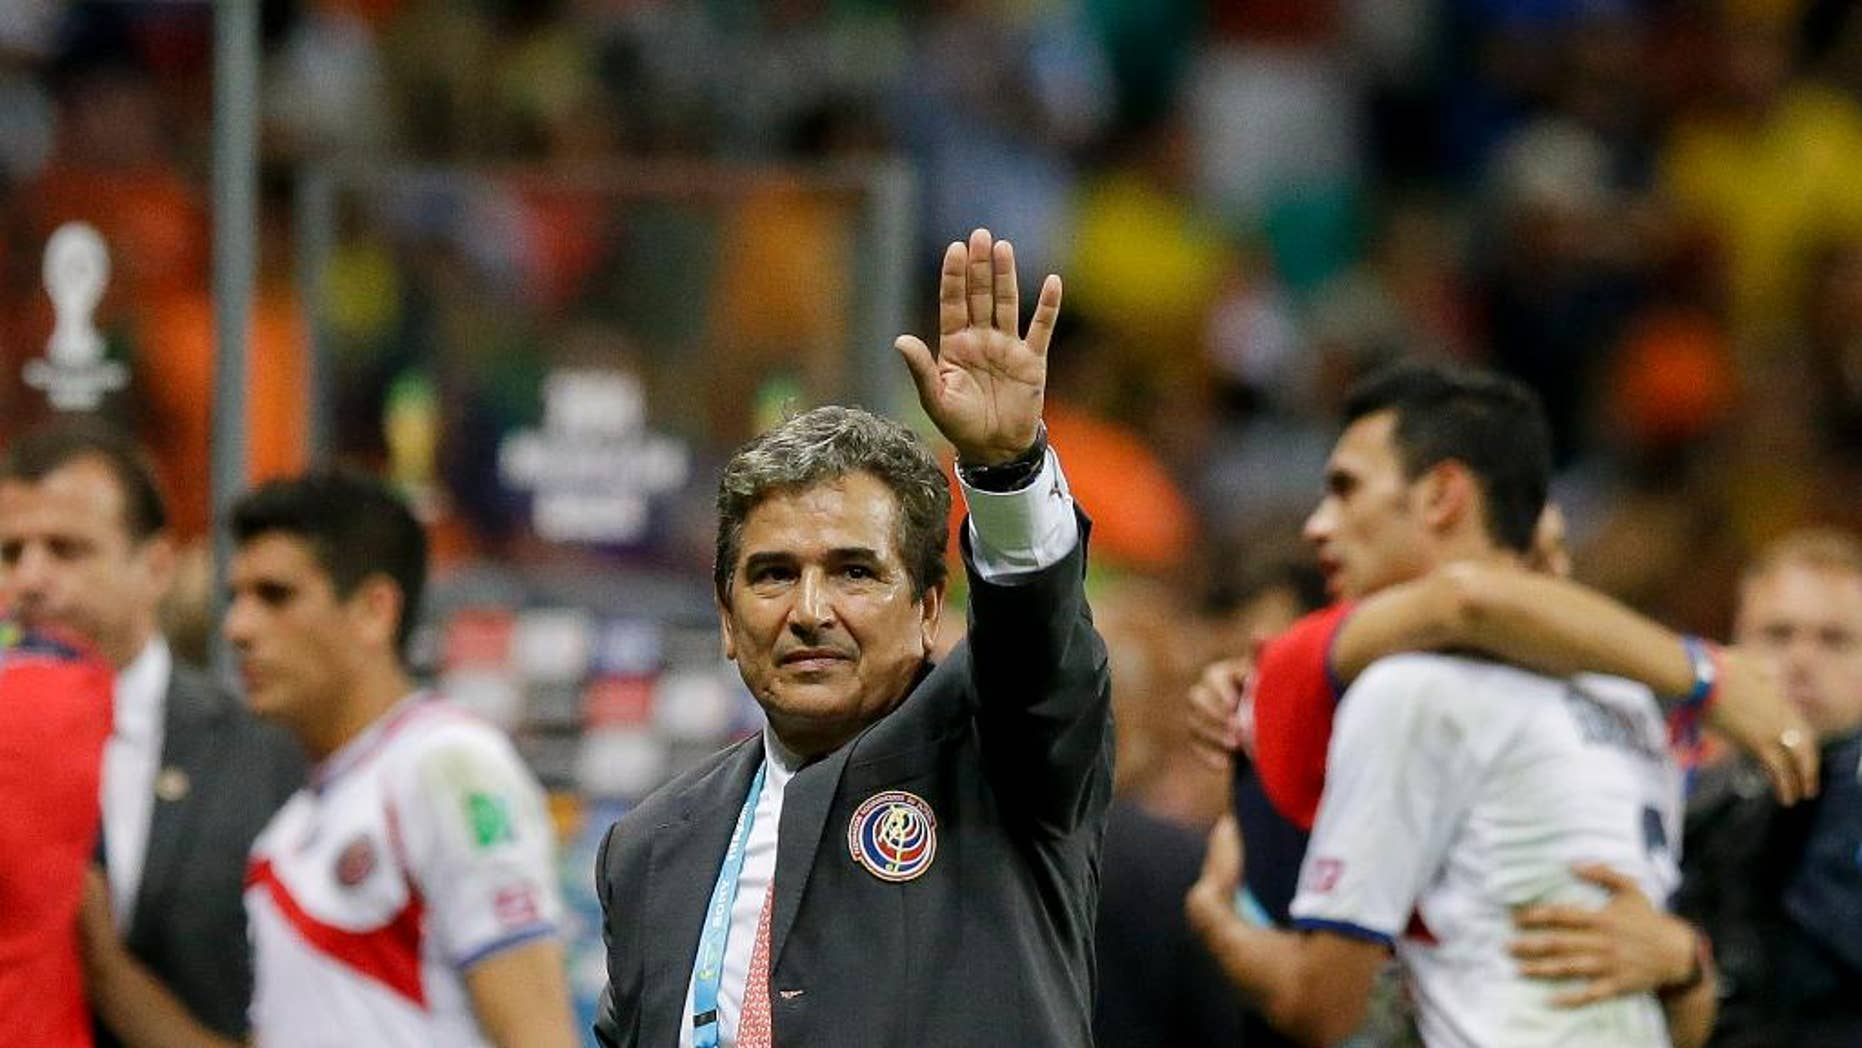 FILE - In this July 5, 2014 file photo, Costa Rica head coach Jorge Luis Pinto waves after a penalty shoot out during the World Cup quarterfinal soccer match between the Netherlands and Costa Rica at the Arena Fonte Nova in Salvador, Brazil.  The Colombia-born manager has decided to leave the Costa Rica national team. (AP Photo/Matt Dunham, File)